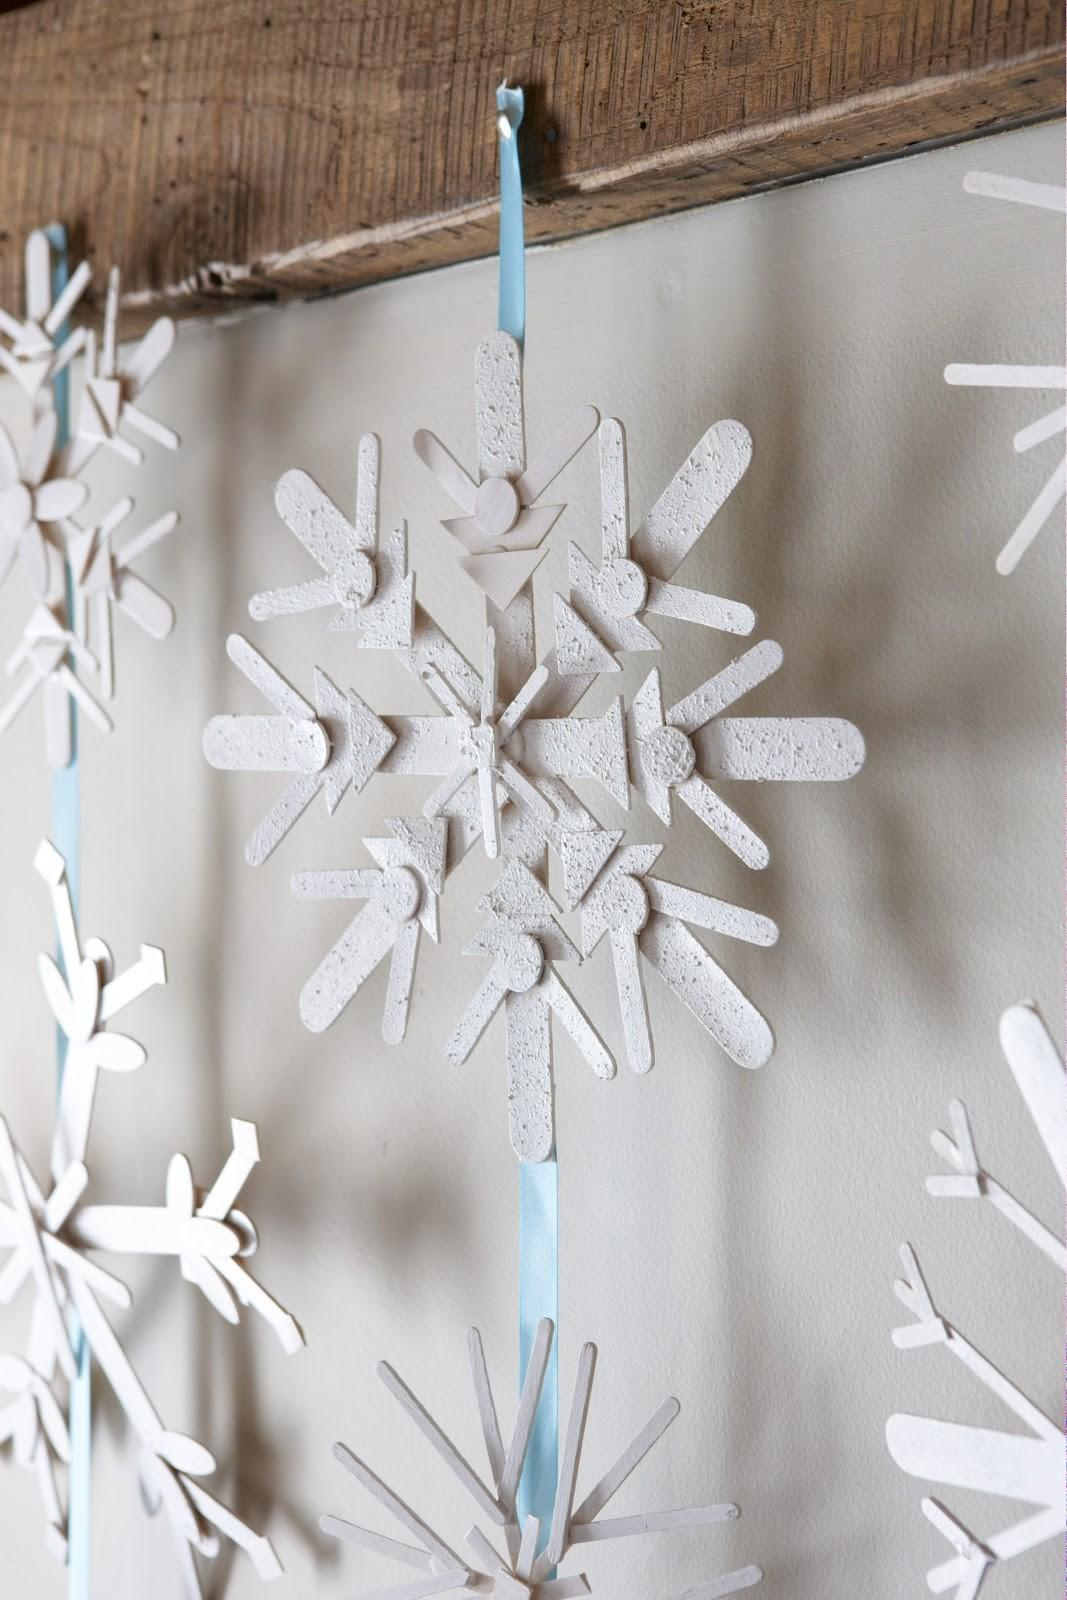 Karin Lidbeck Day Count Down Diy Snowflake Decor